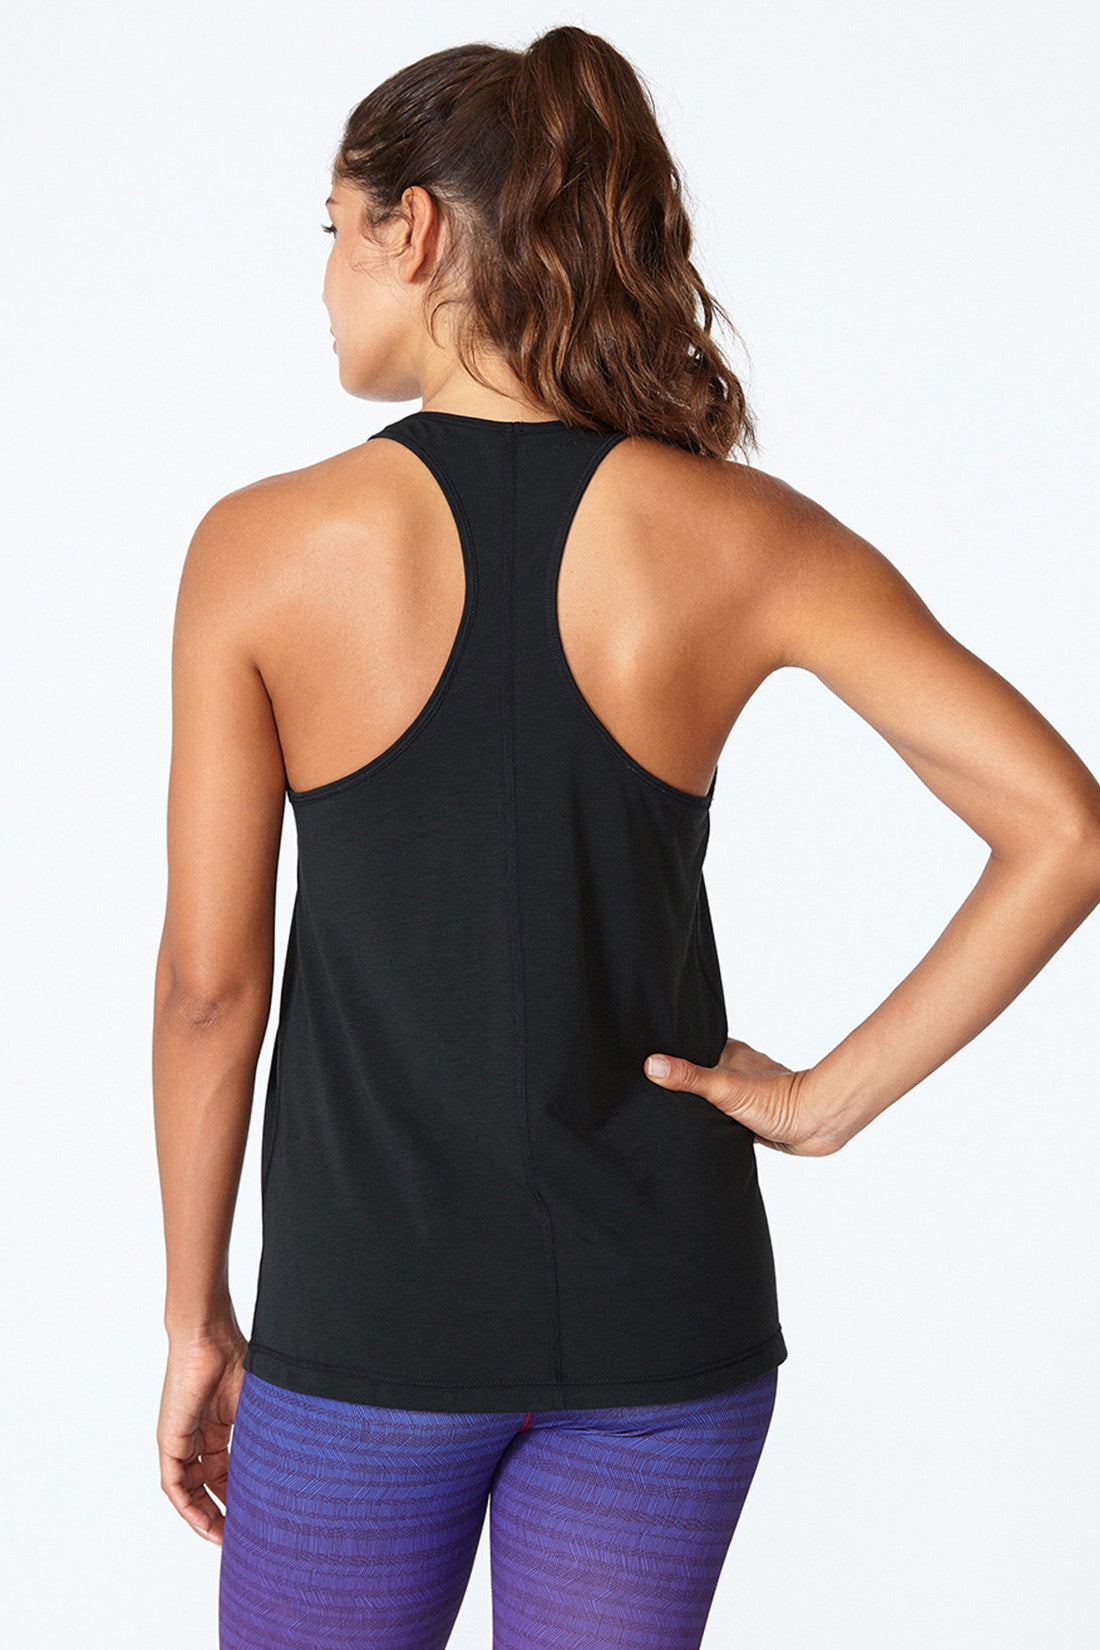 Comfortable, Light weight, Spin class, Hiking, Breezy, Skin-like, any activity, all around, Jessica Racer Back - Black